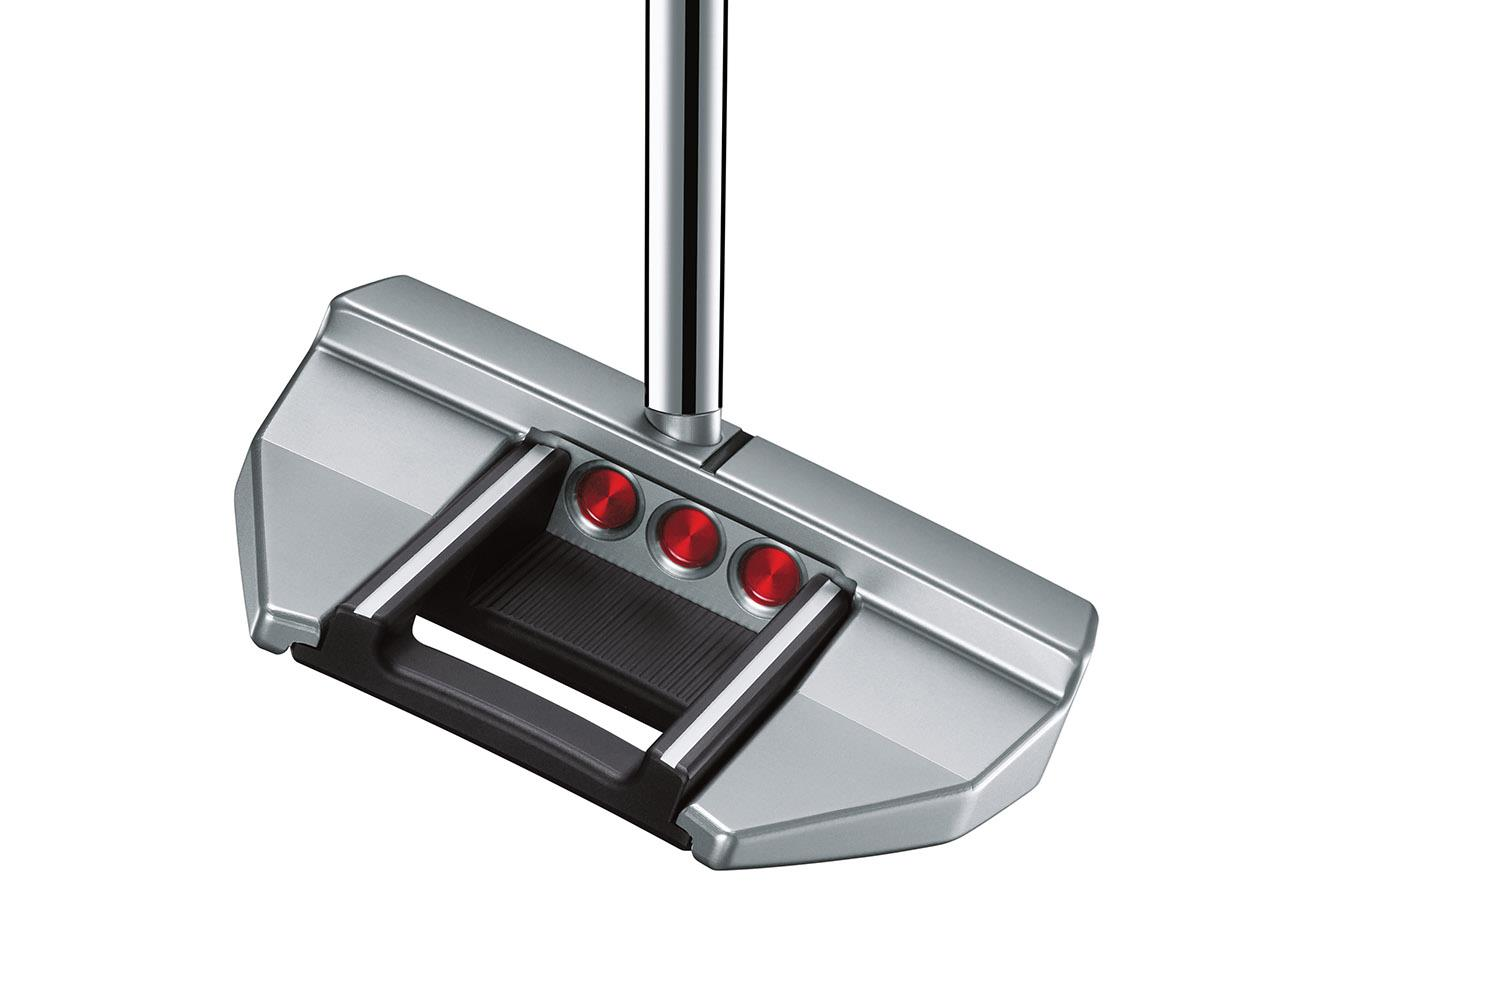 Titleist reveal new Scotty Cameron Futura putters